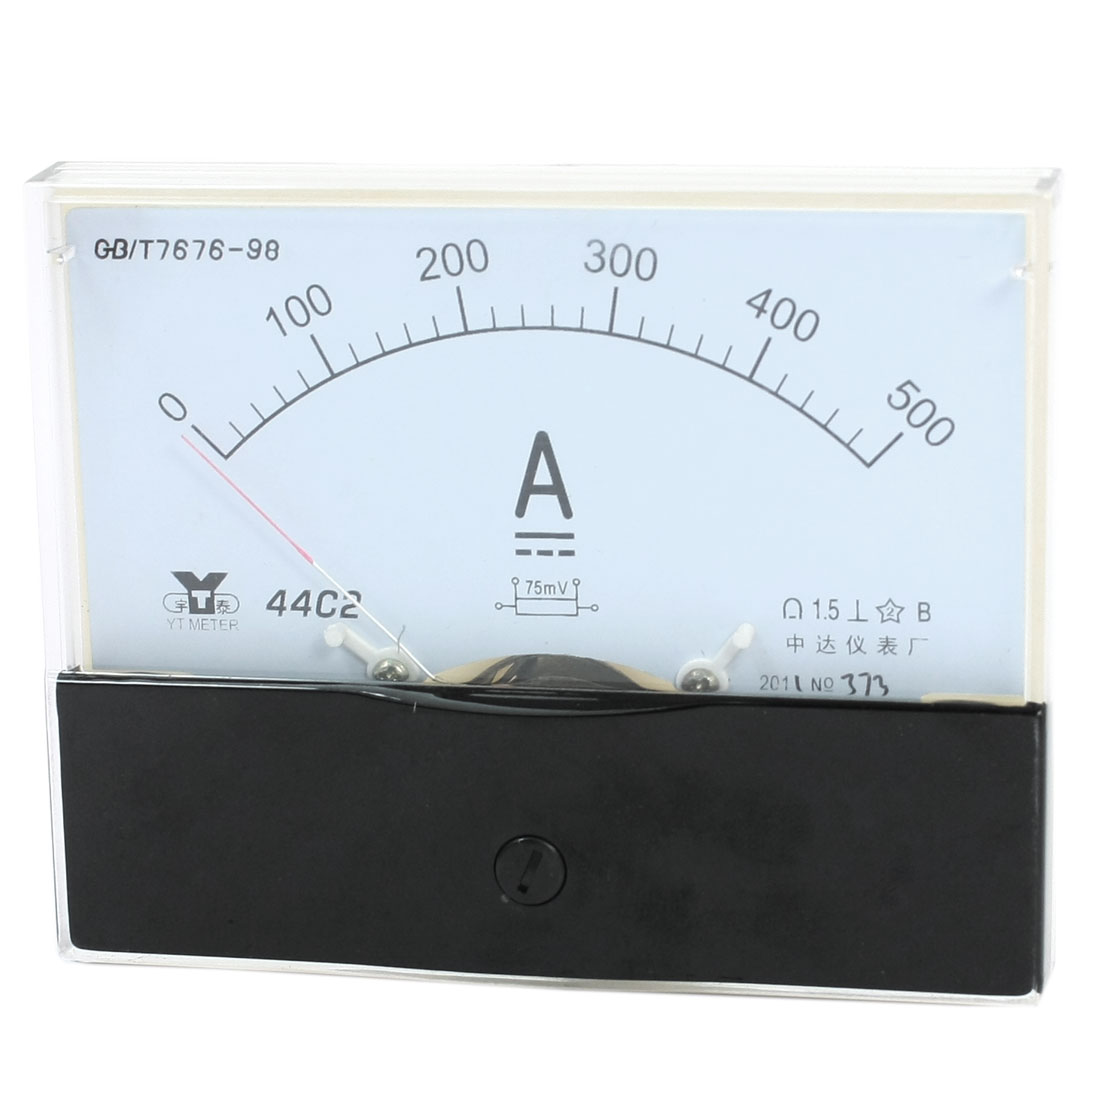 Rectangle Measurement Tool Analog Panel Ammeter Gauge DC 0 - 500A Measuring Range 44C2